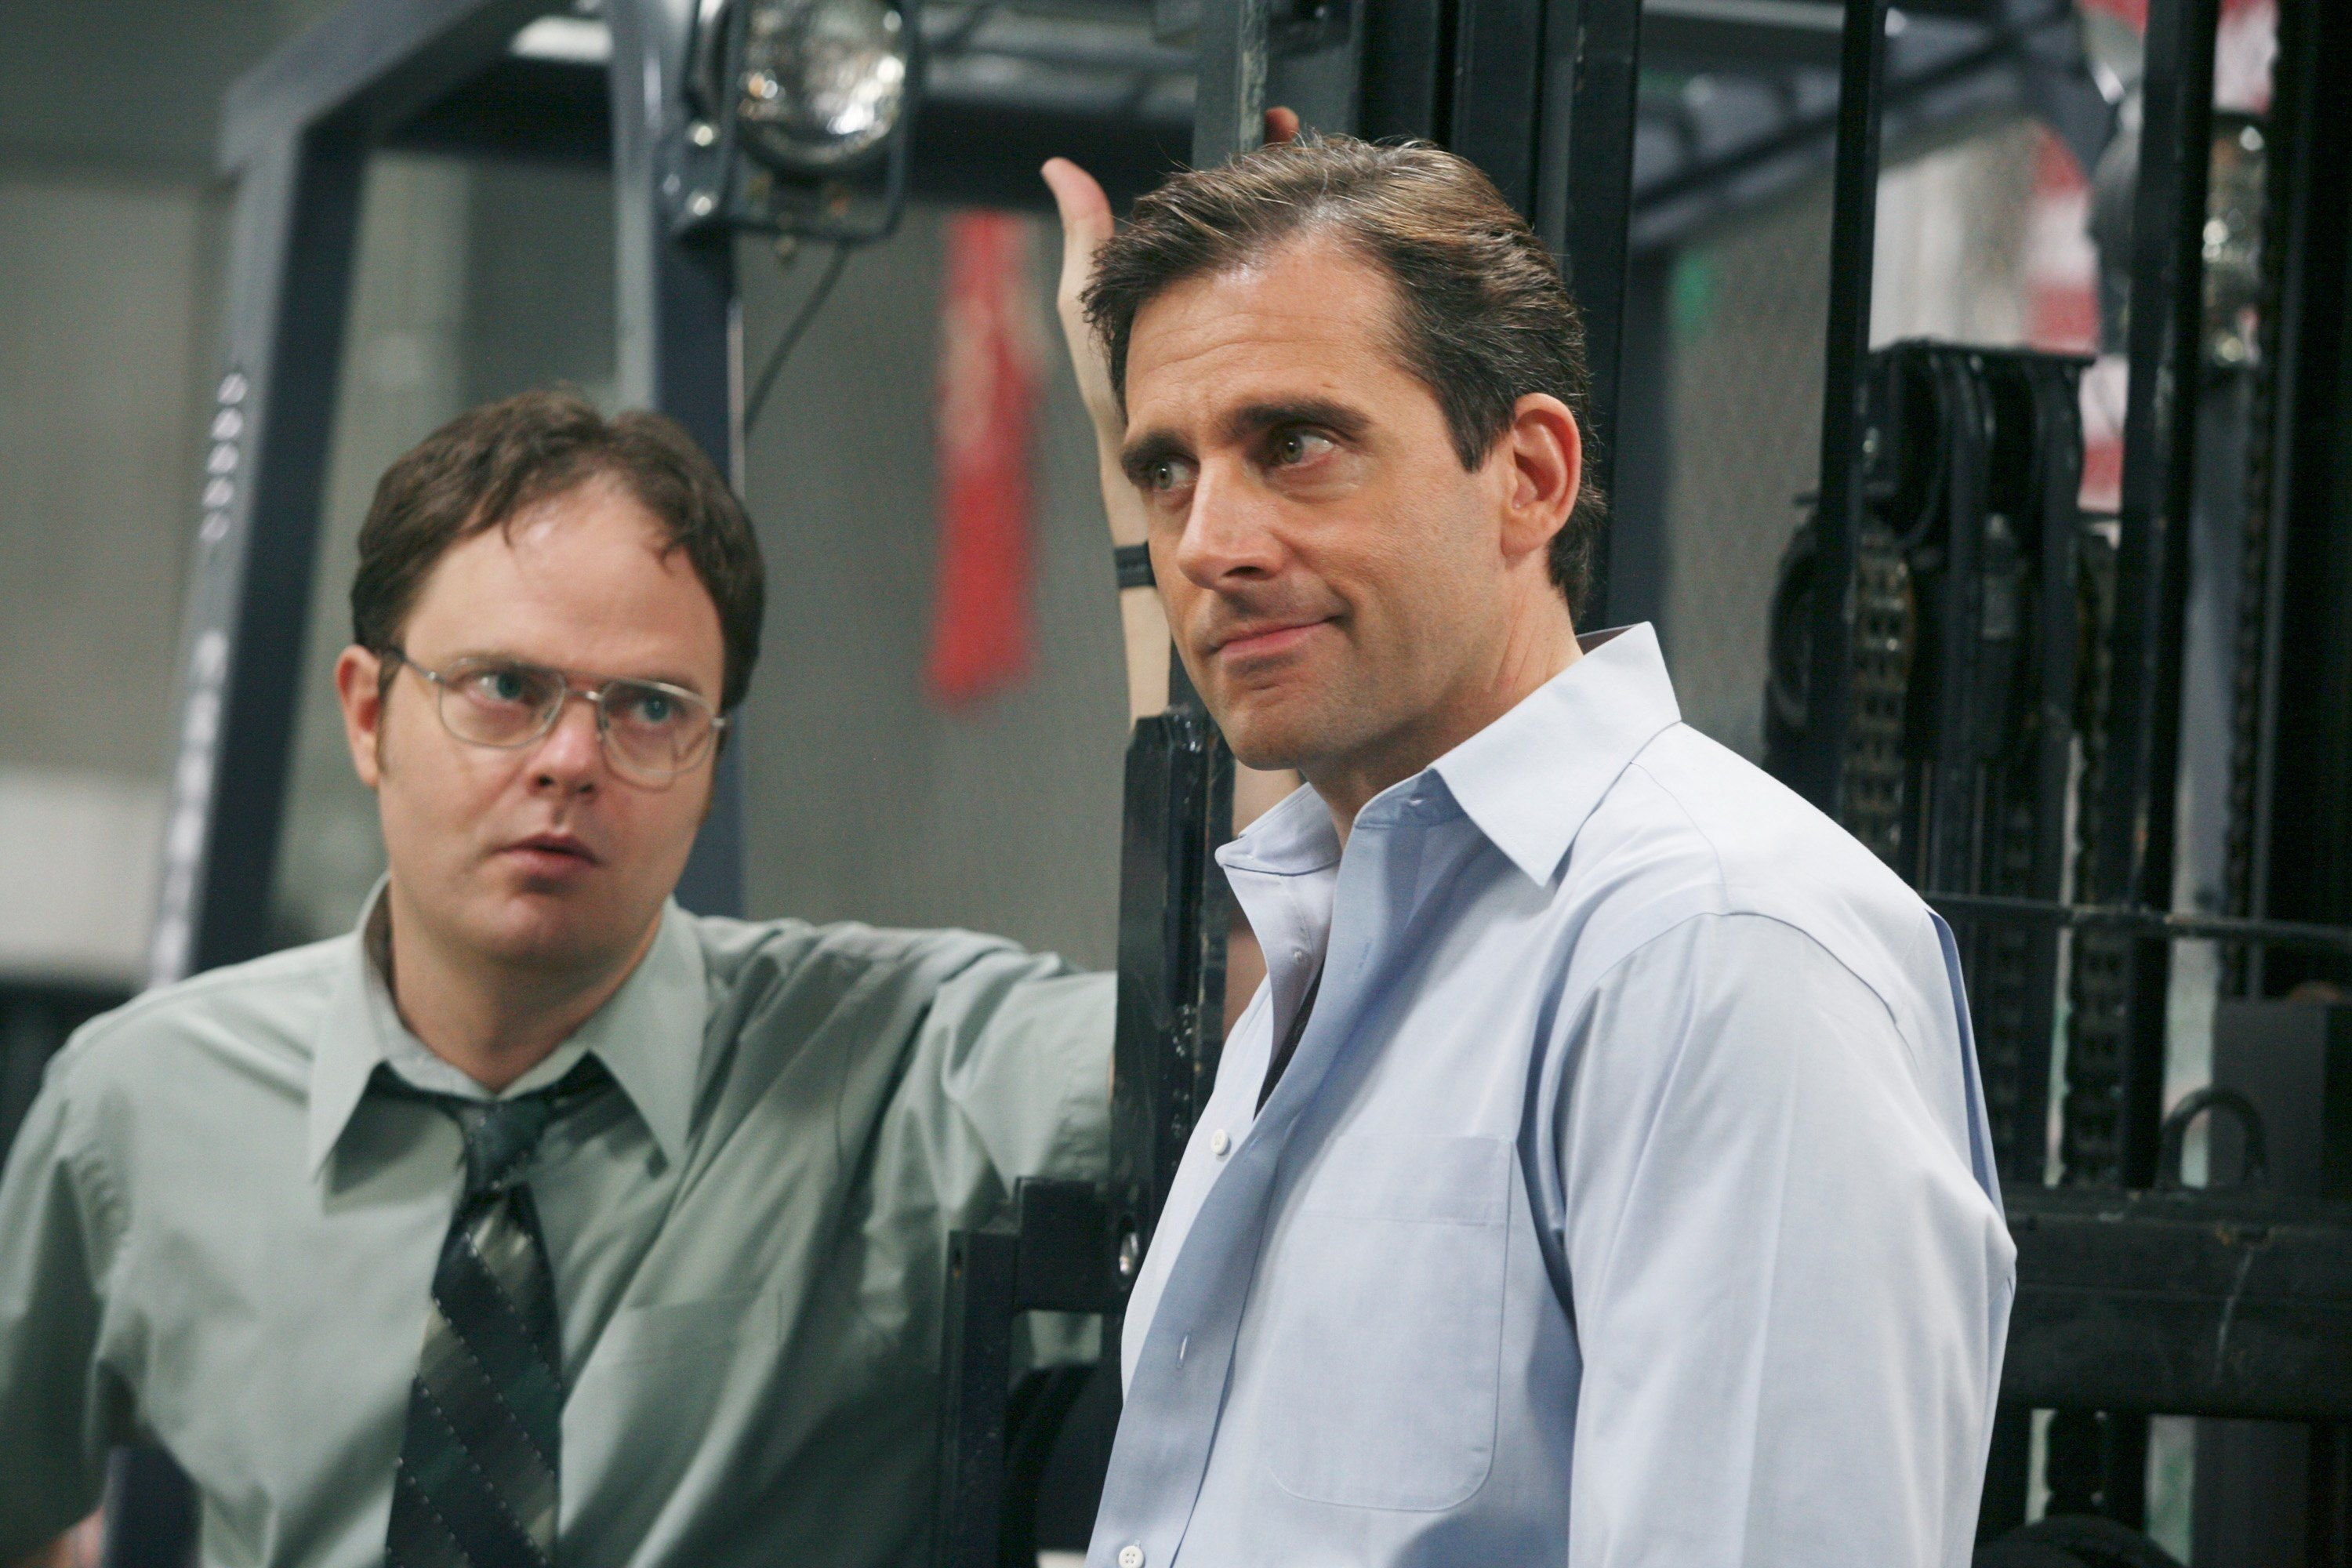 The Office became one of the most watched shows of the era / Getty Images